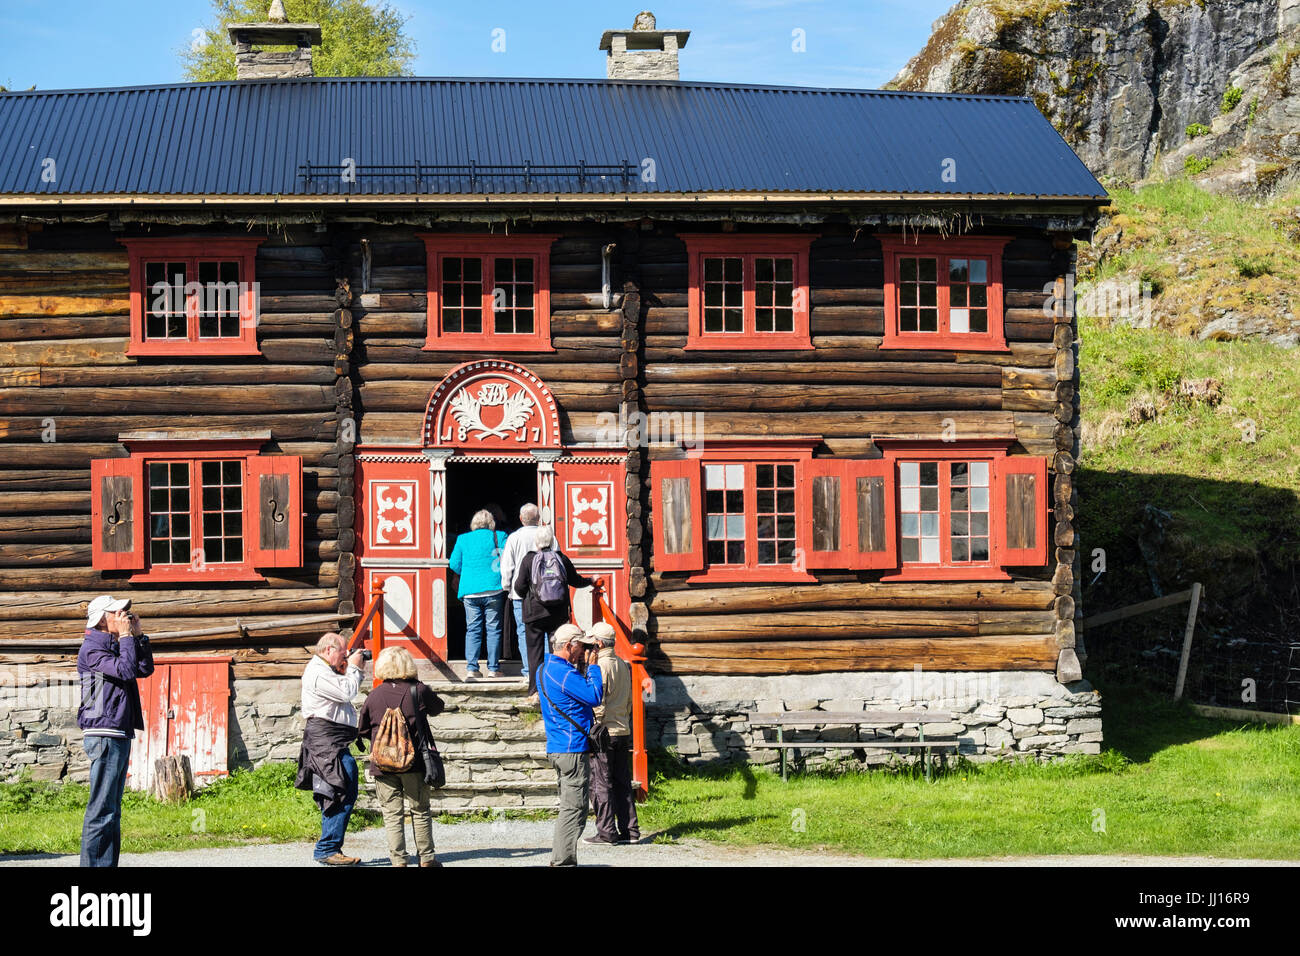 Tourists visiting 19th century traditional Norwegian wooden farmhouse circa 1817 in Sverresborg Trøndelag Folk - Stock Image